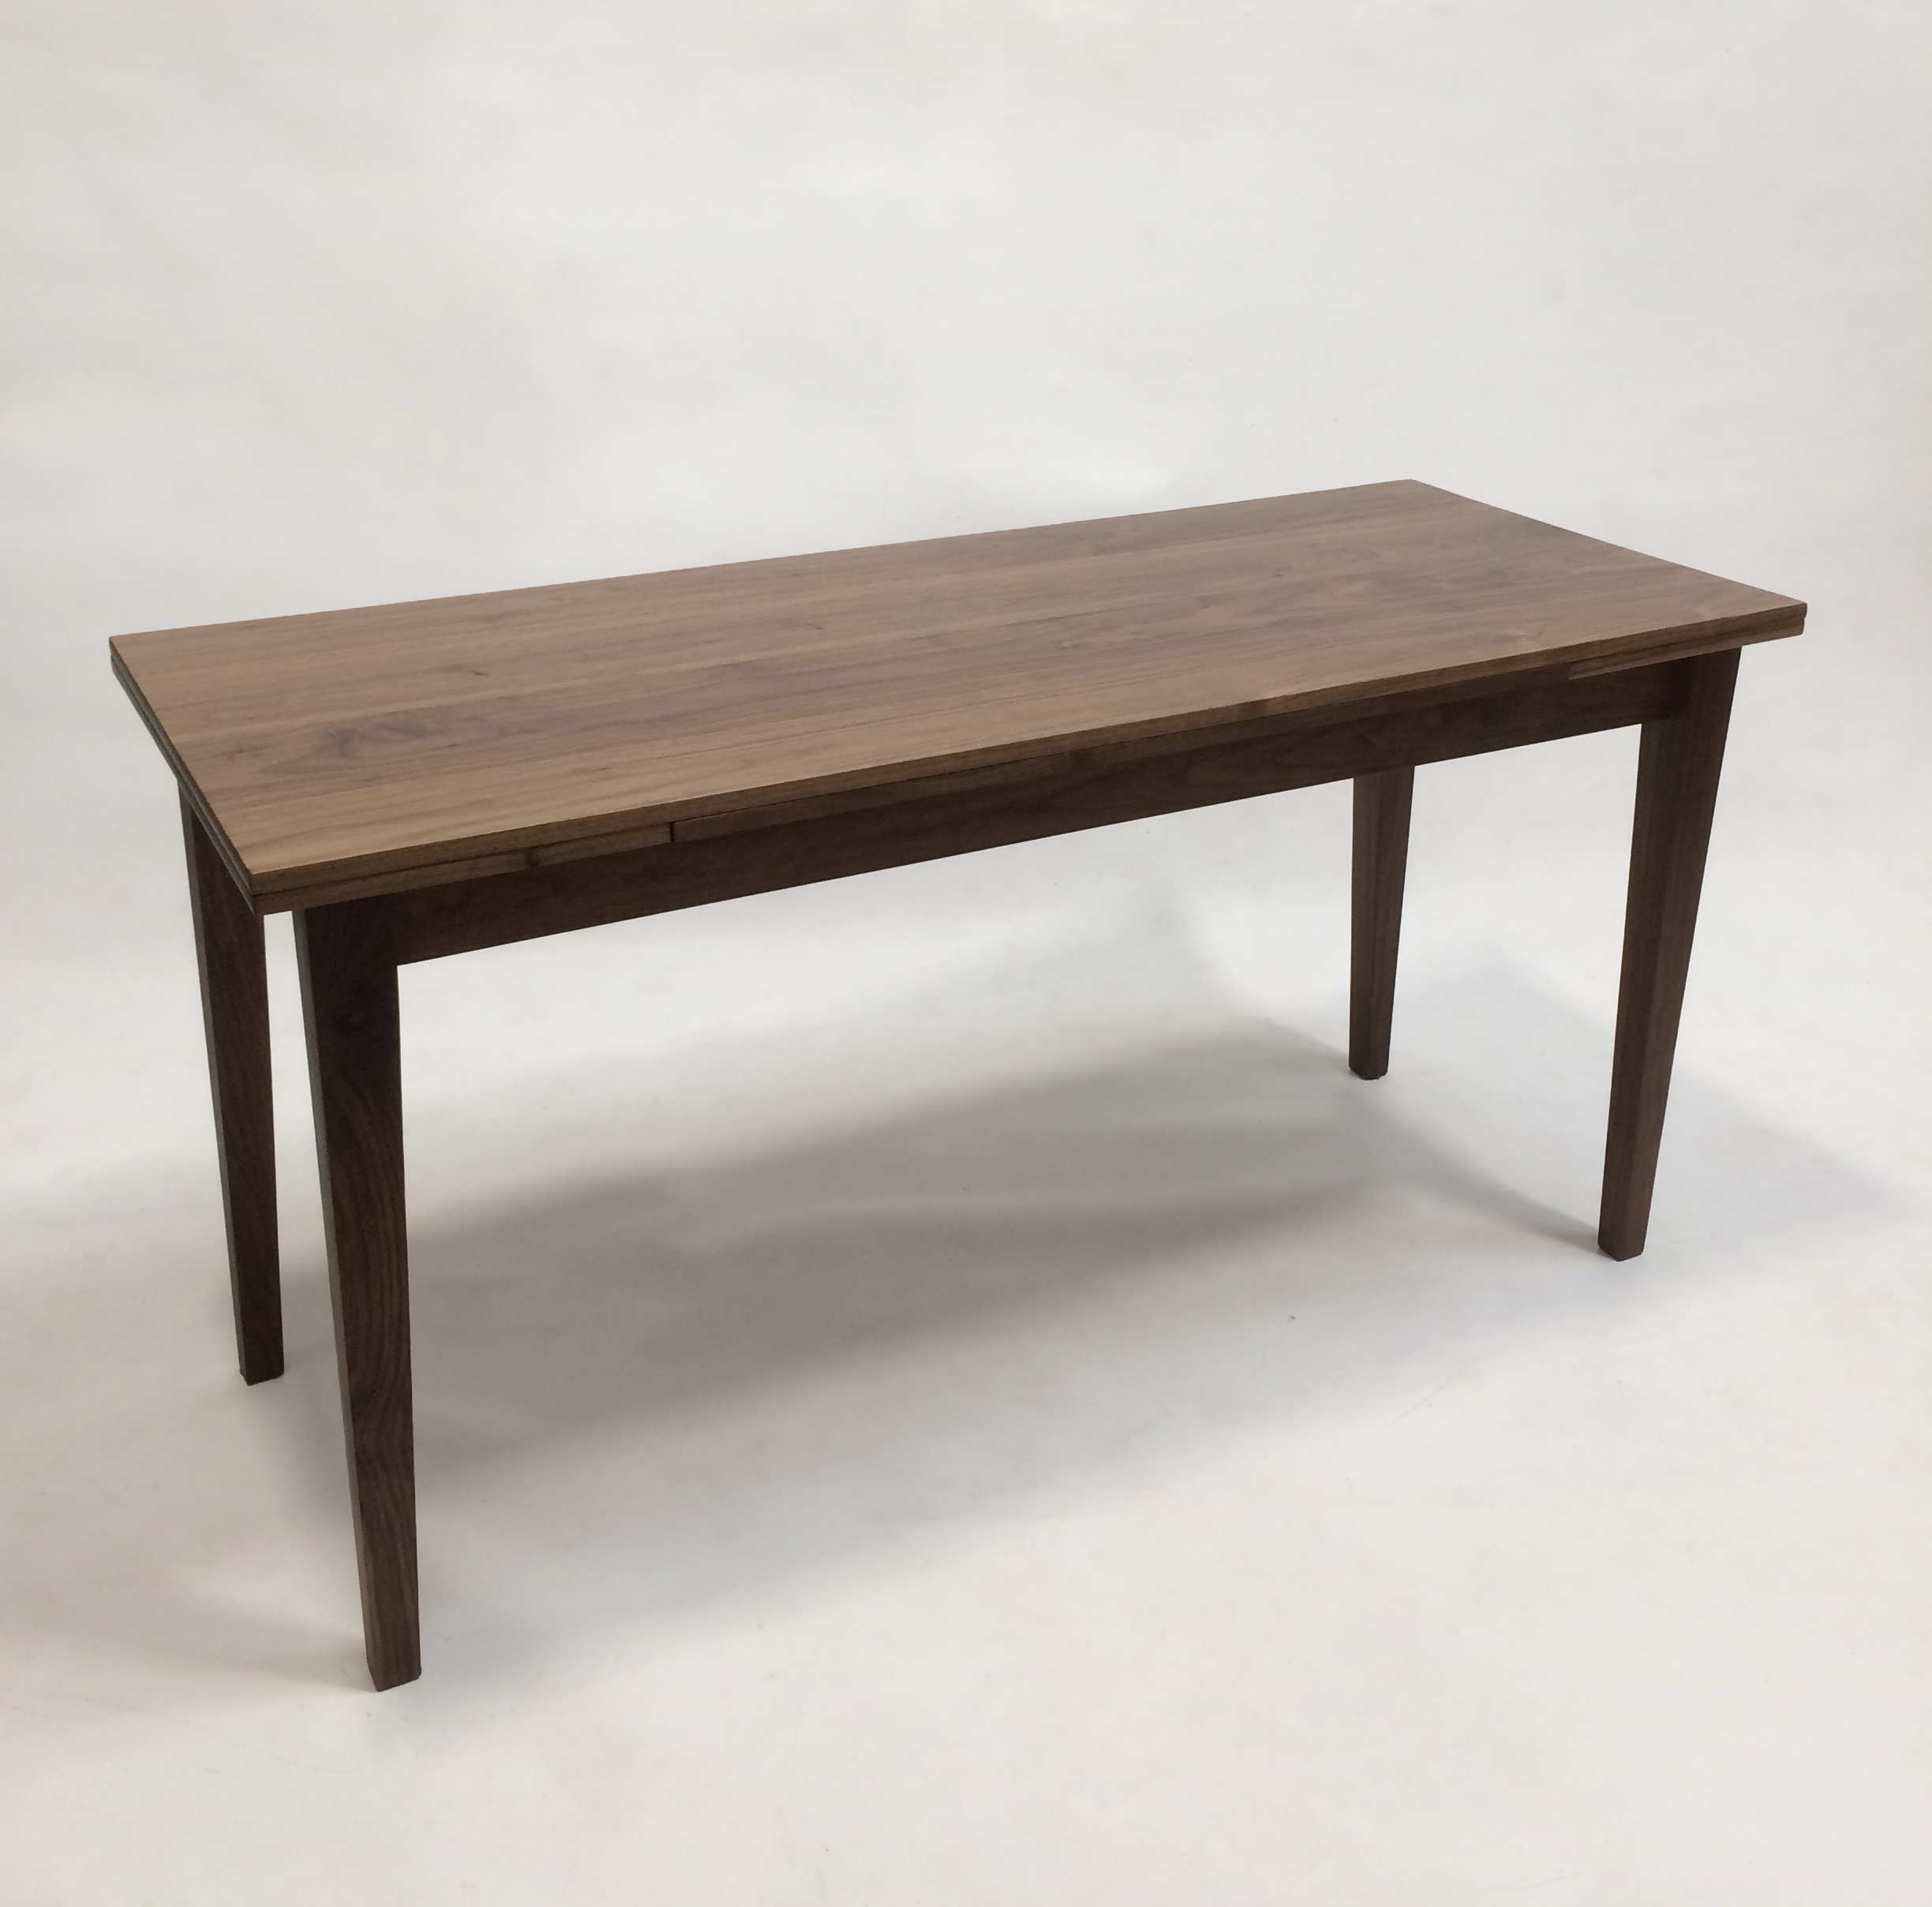 Walnut Dining Room Table - Draw Leaf Dutch Pull Out Table